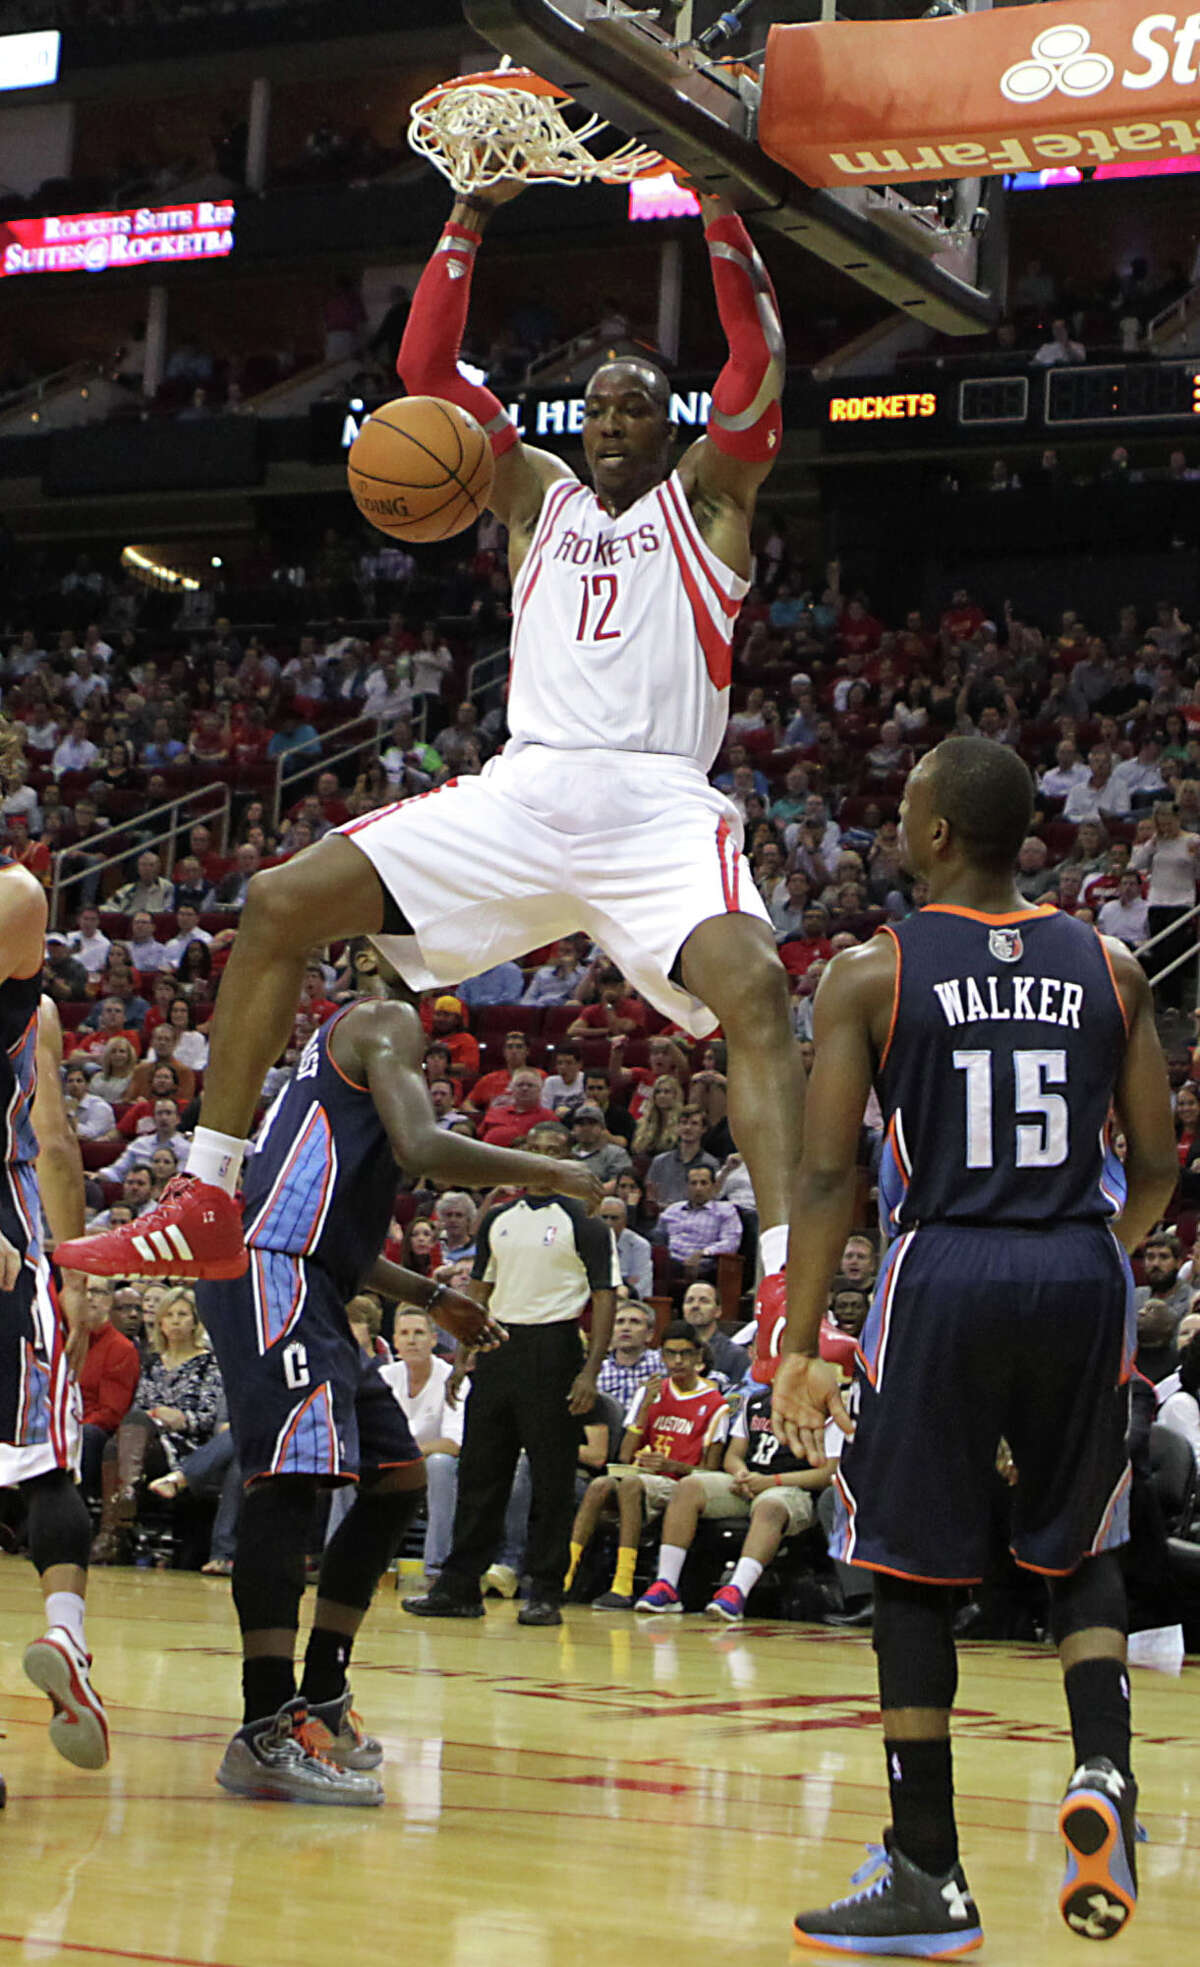 Dwight Howard slams home two of his 17 points Wednesday night, part of a Rockets debut that saw the NBA's most highly regarded center tie a career high with 26 rebounds in a 96-83 win over the Charlotte Bobcats at Toyota Center.